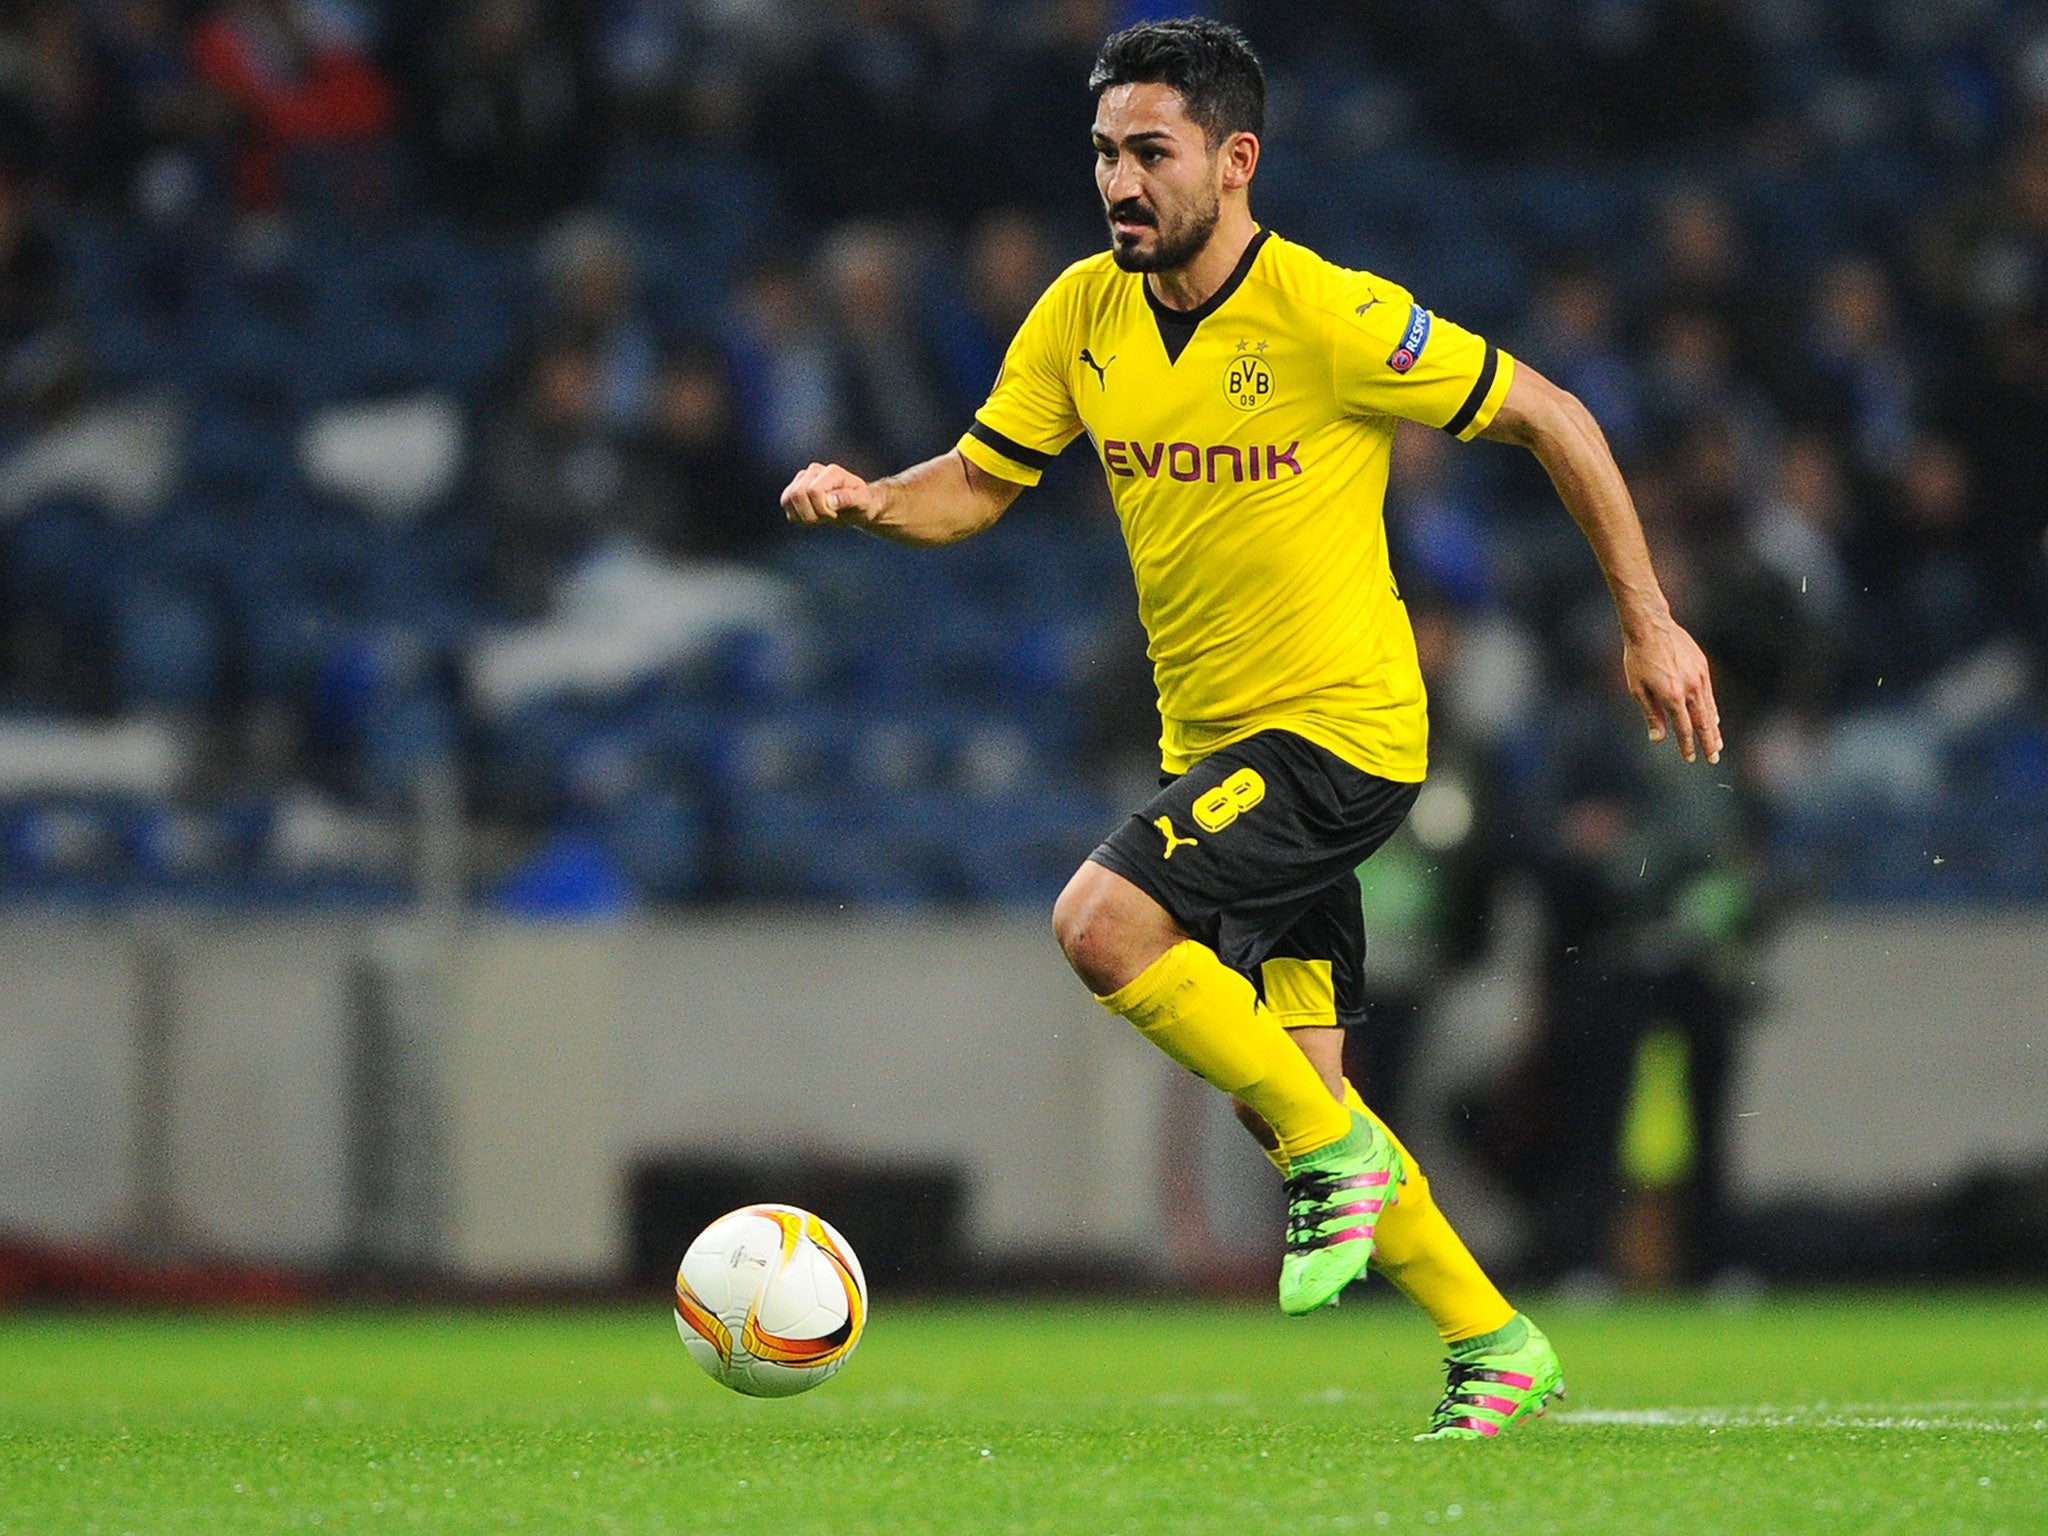 Ilkay Gundogan Wallpaper Arsenal could miss out...